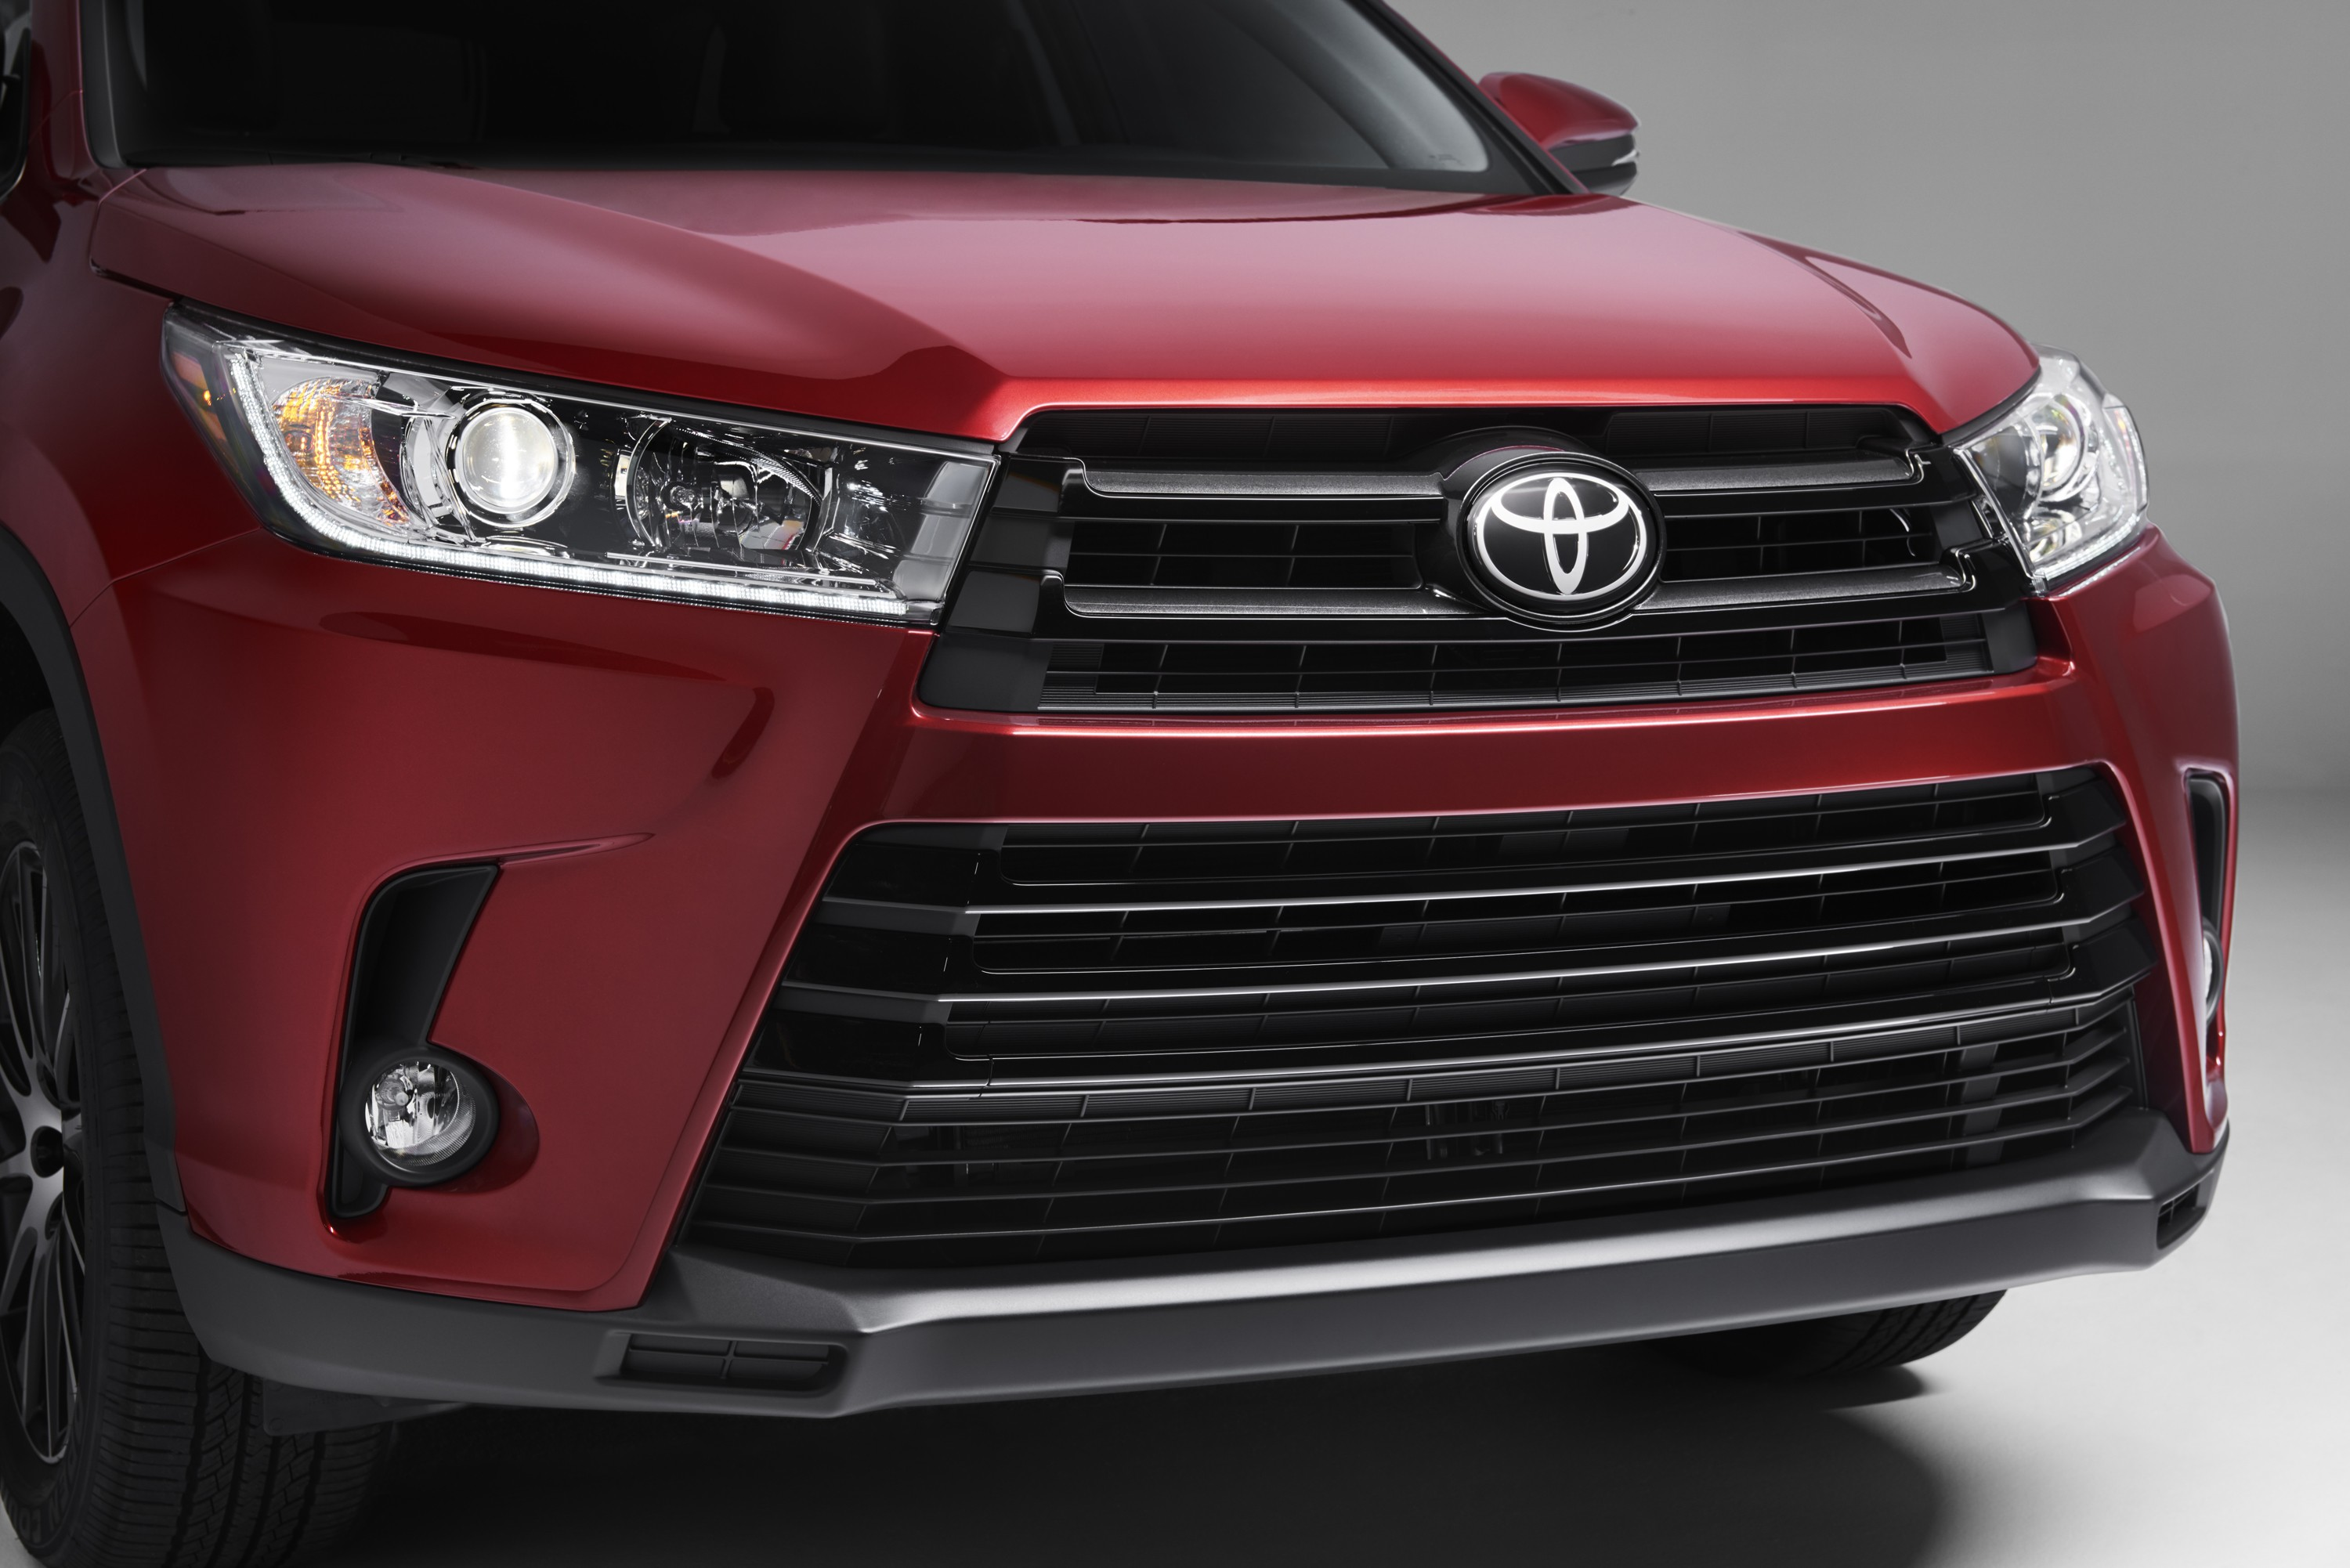 New Fortuner Toyota 2017 6 | 2017 - 2018 Best Cars Reviews